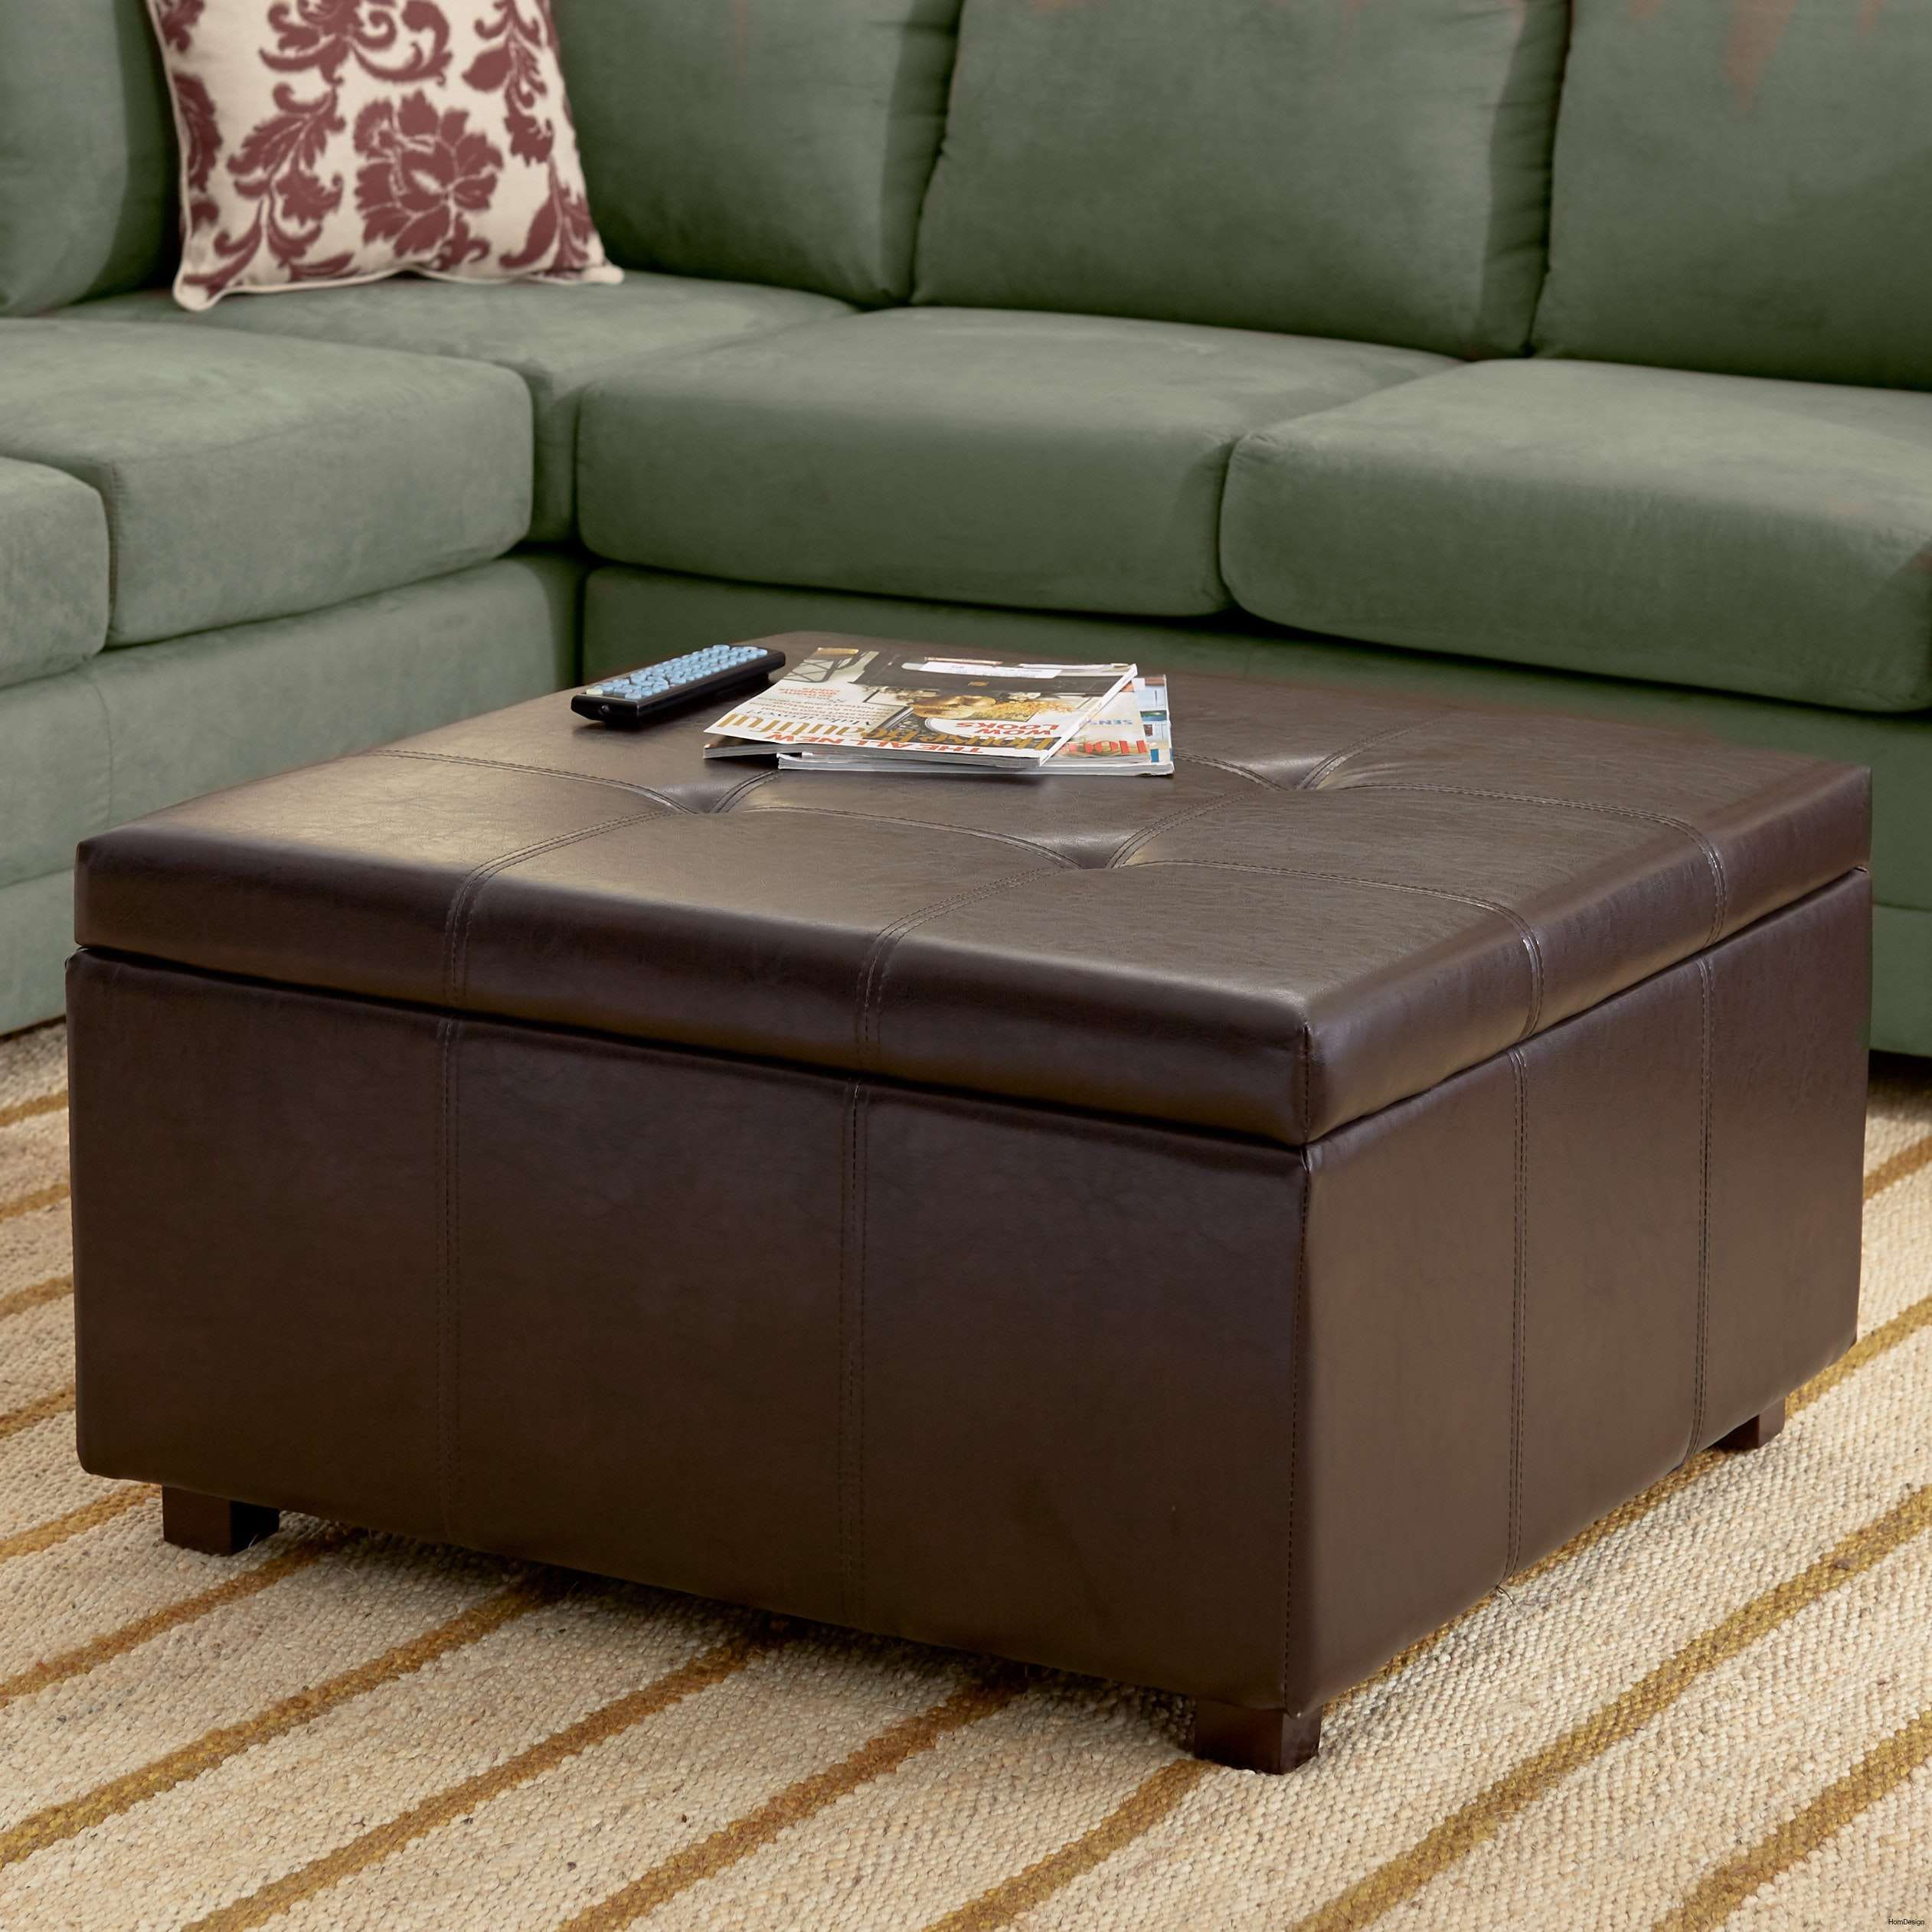 Extra Large Leather Ottoman Coffee Table Download Square Pouf Blue Storage Ottoman Extra Kohl [ 2523 x 2523 Pixel ]